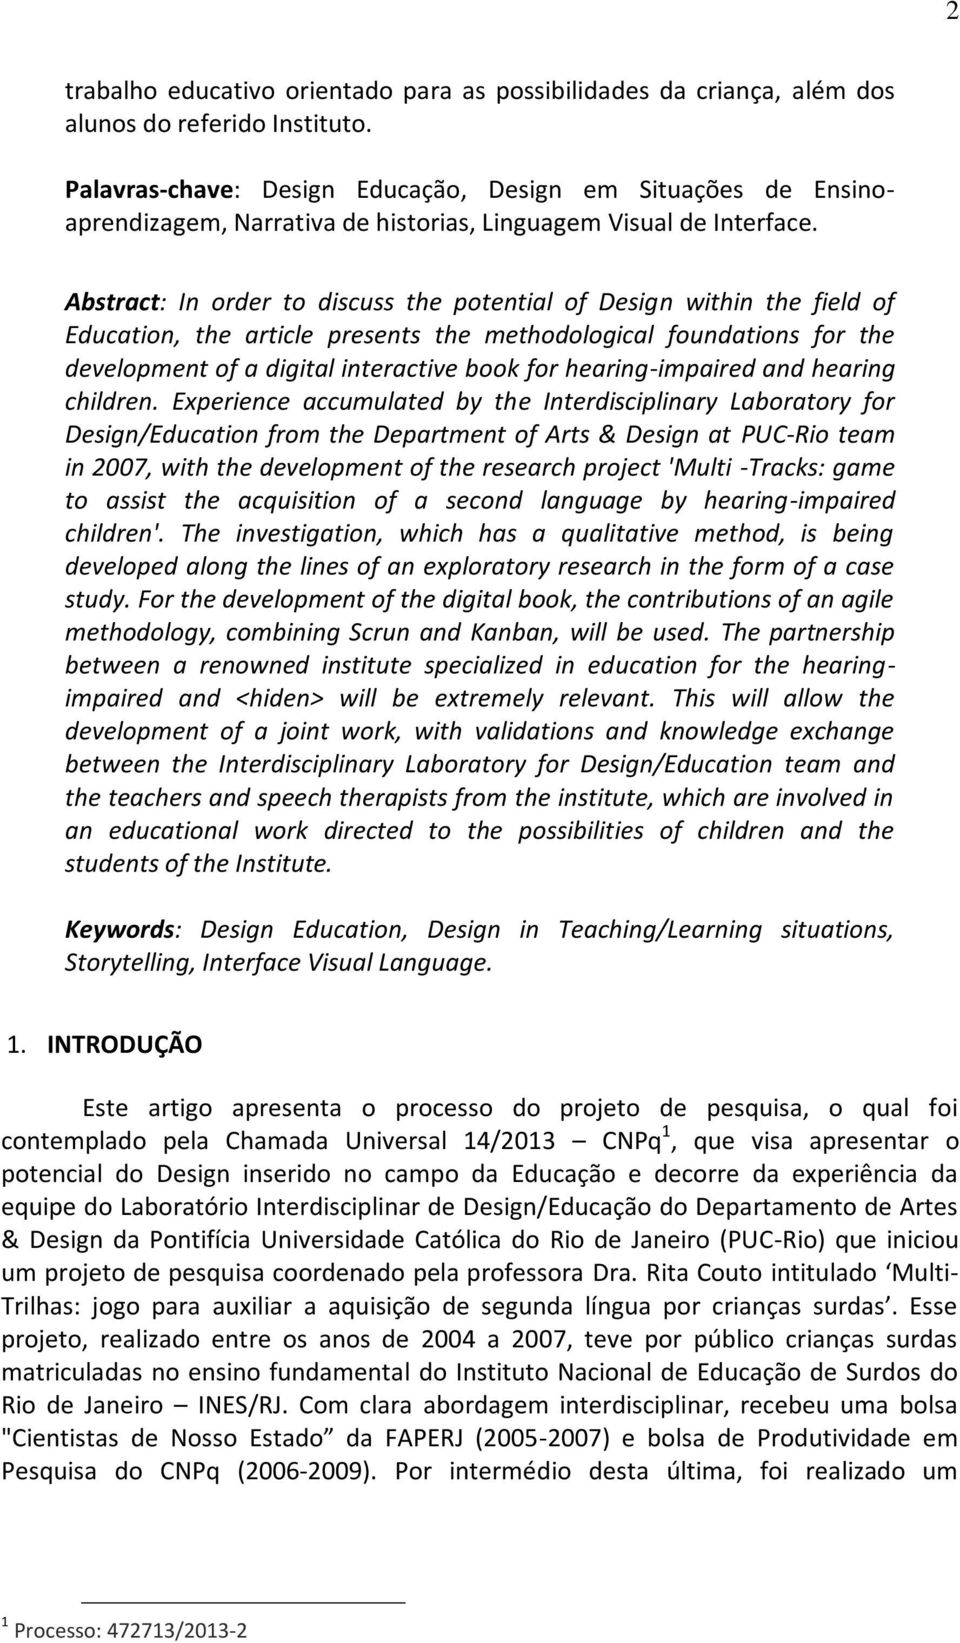 Abstract: In order to discuss the potential of Design within the field of Education, the article presents the methodological foundations for the development of a digital interactive book for